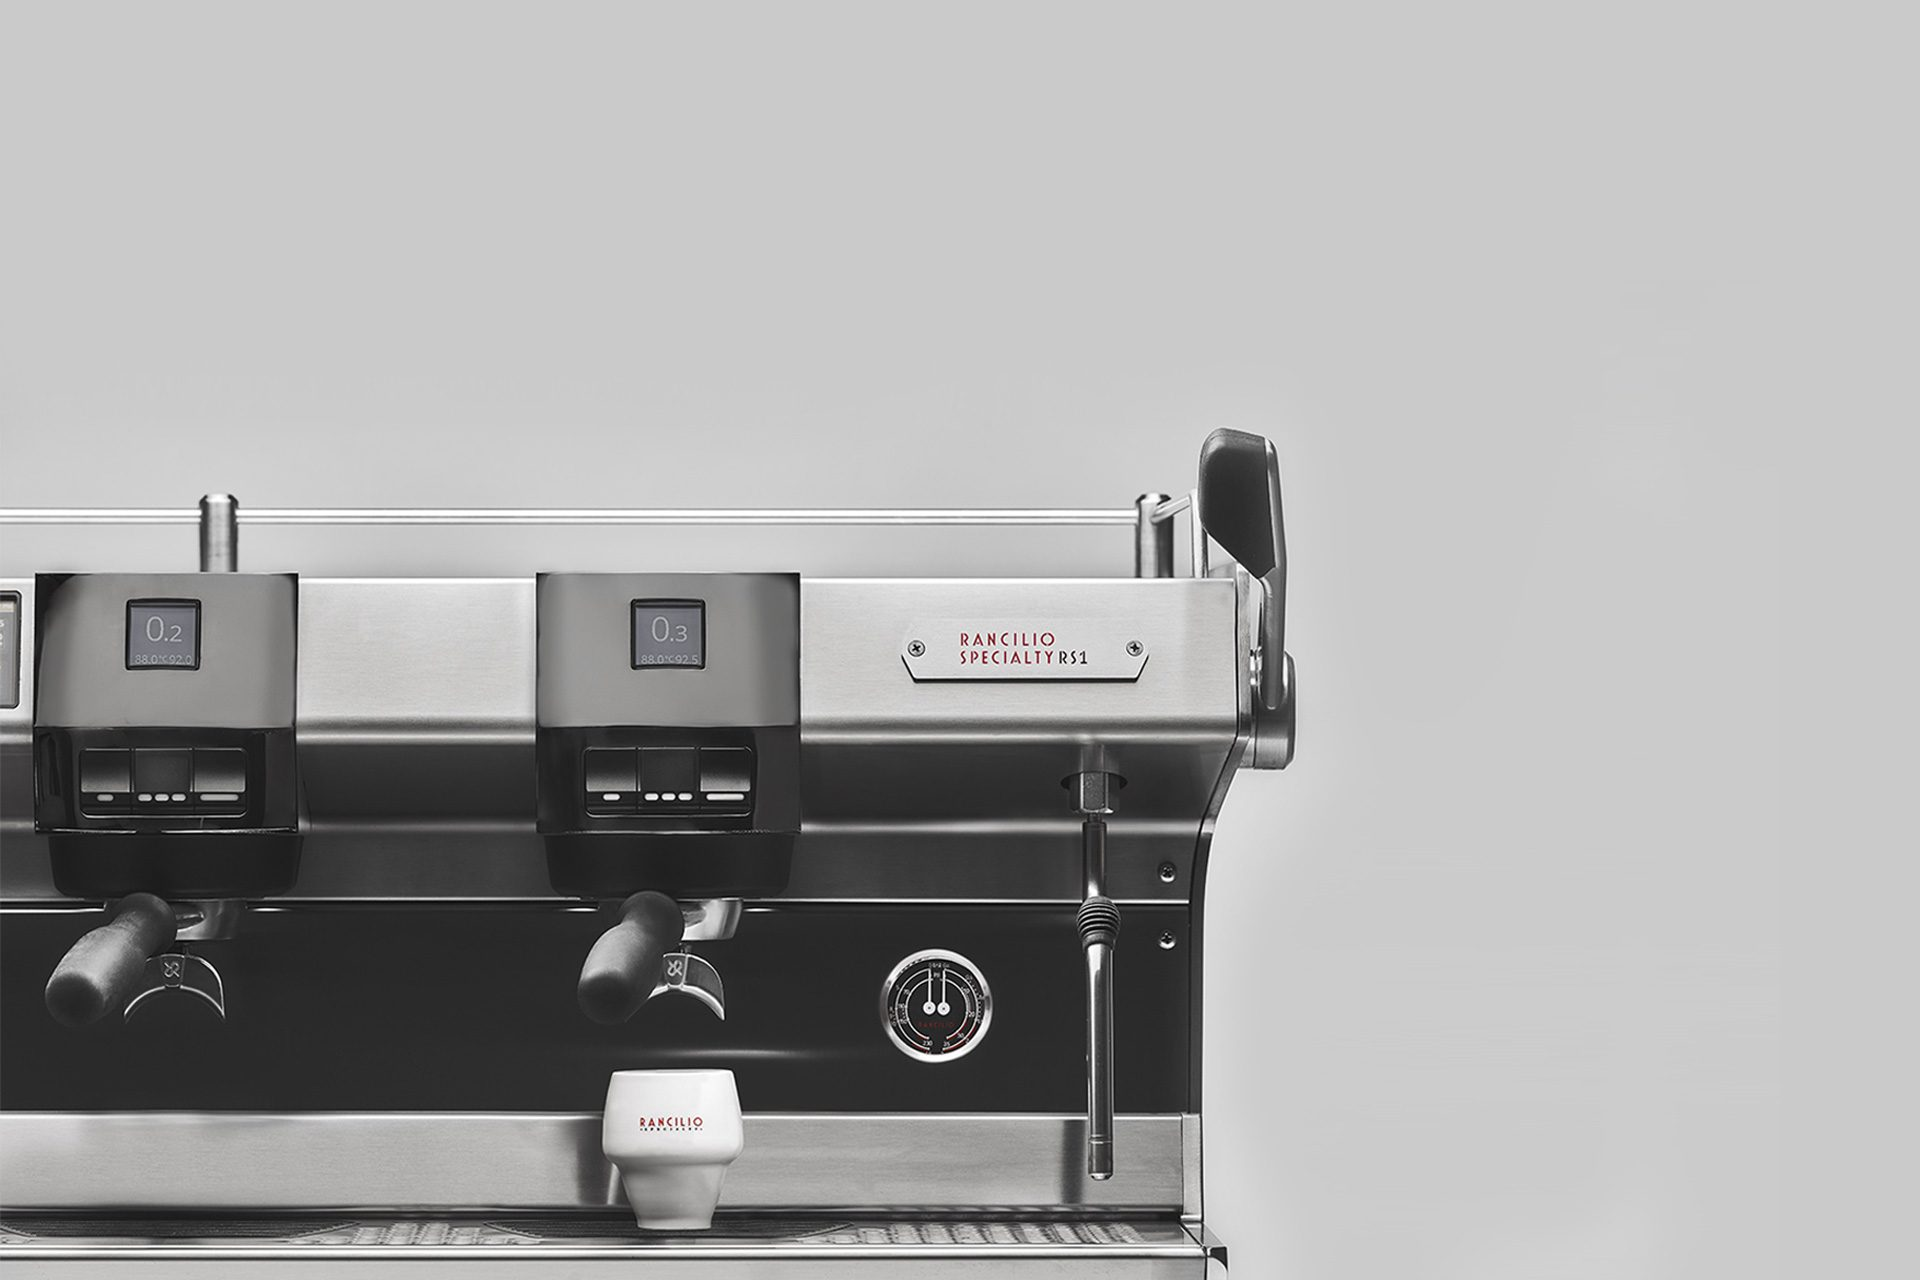 Rancilio Specialty RS1 is the official sponsor of the Italian Latte Art & Coffee in Good Spirits Championship